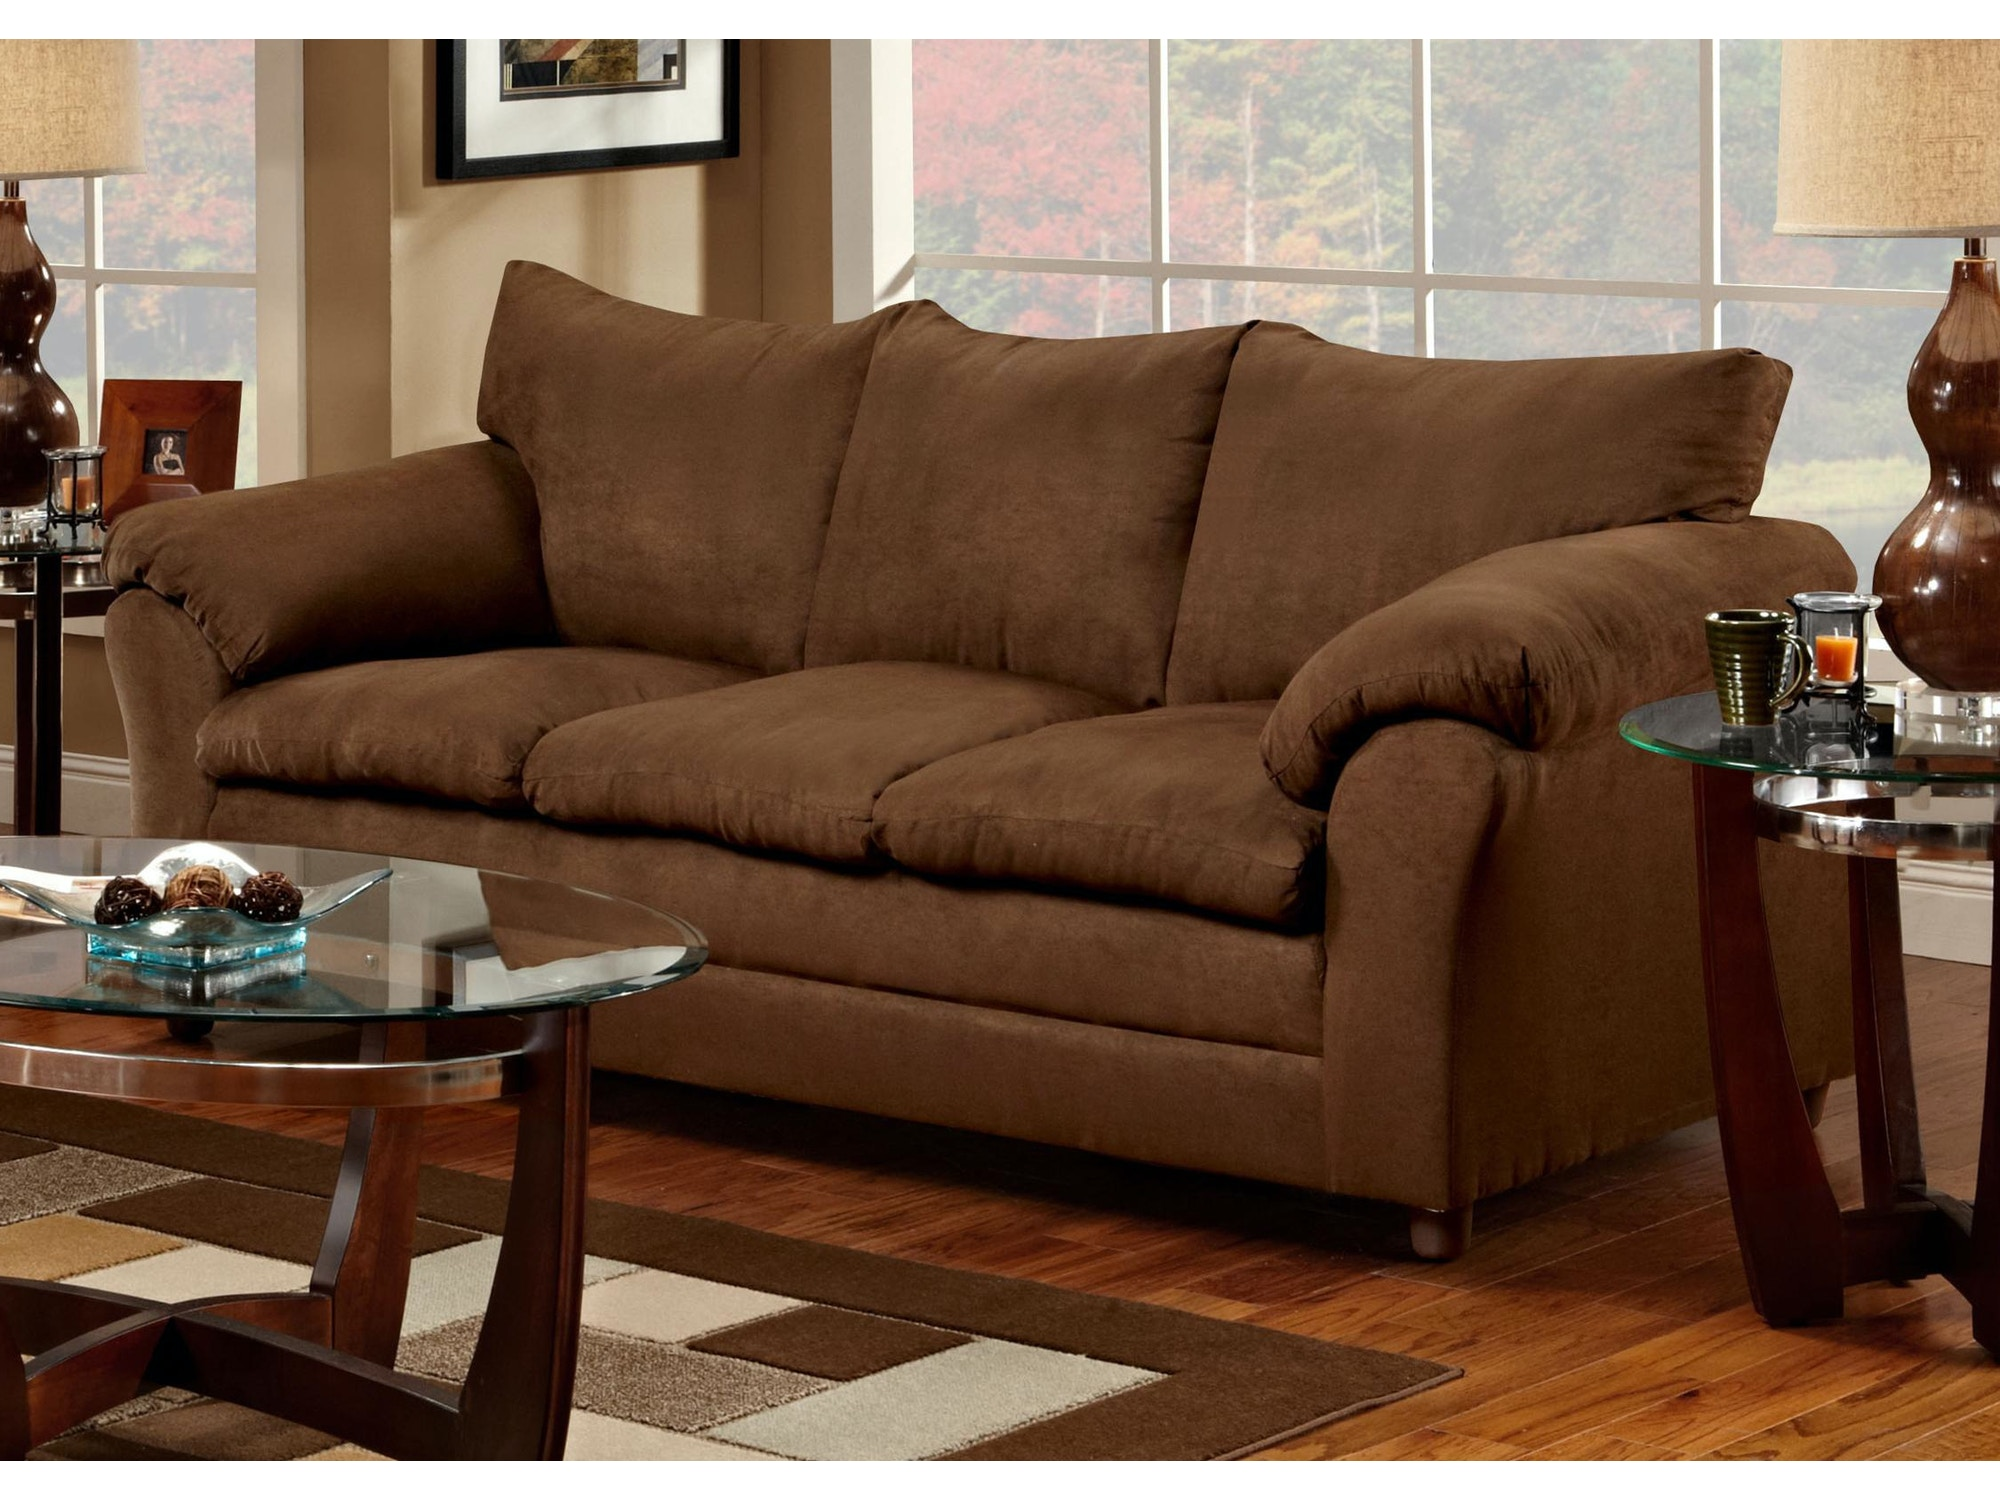 Sofas Cincinnati Sectional Sofas Furniture Cozy Living Room Design Using Cool Thesofa